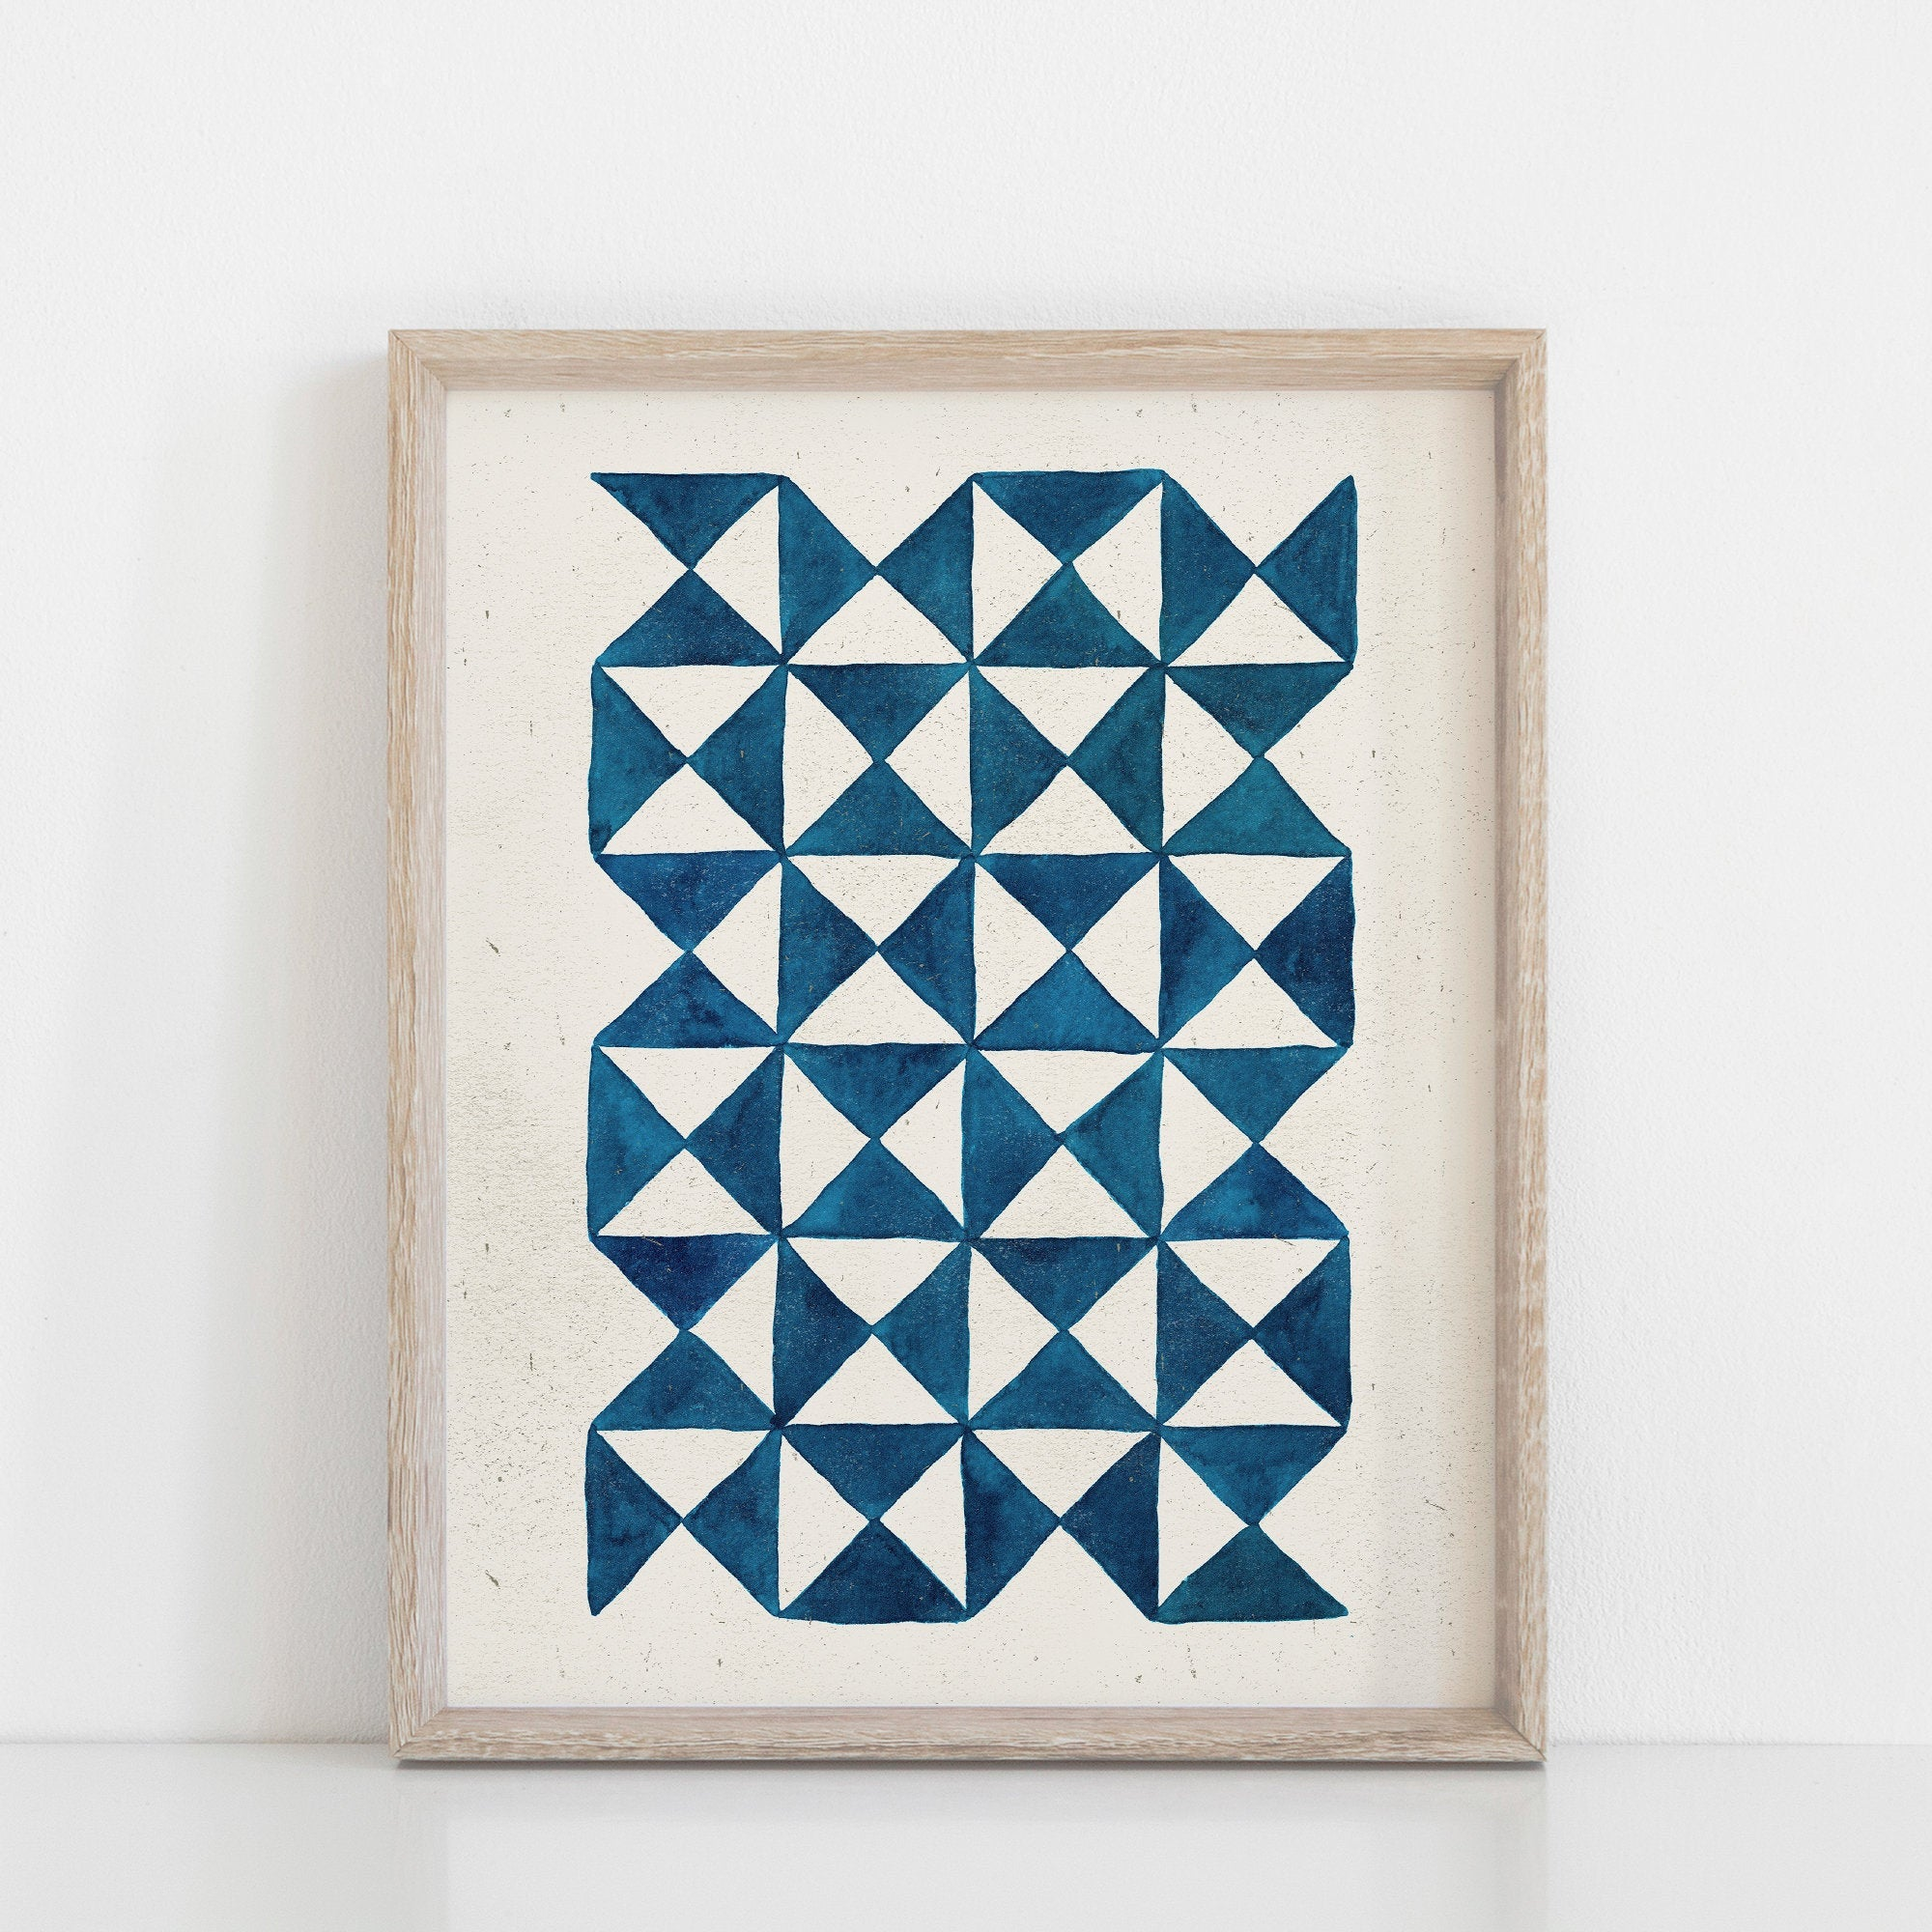 Watercolor Pinwheel Quilt Wall Art Print - Blue | Geometric Wall Art | Blue Art Print | Watercolor Art Print | Minimalist Art | 5x7 8x10